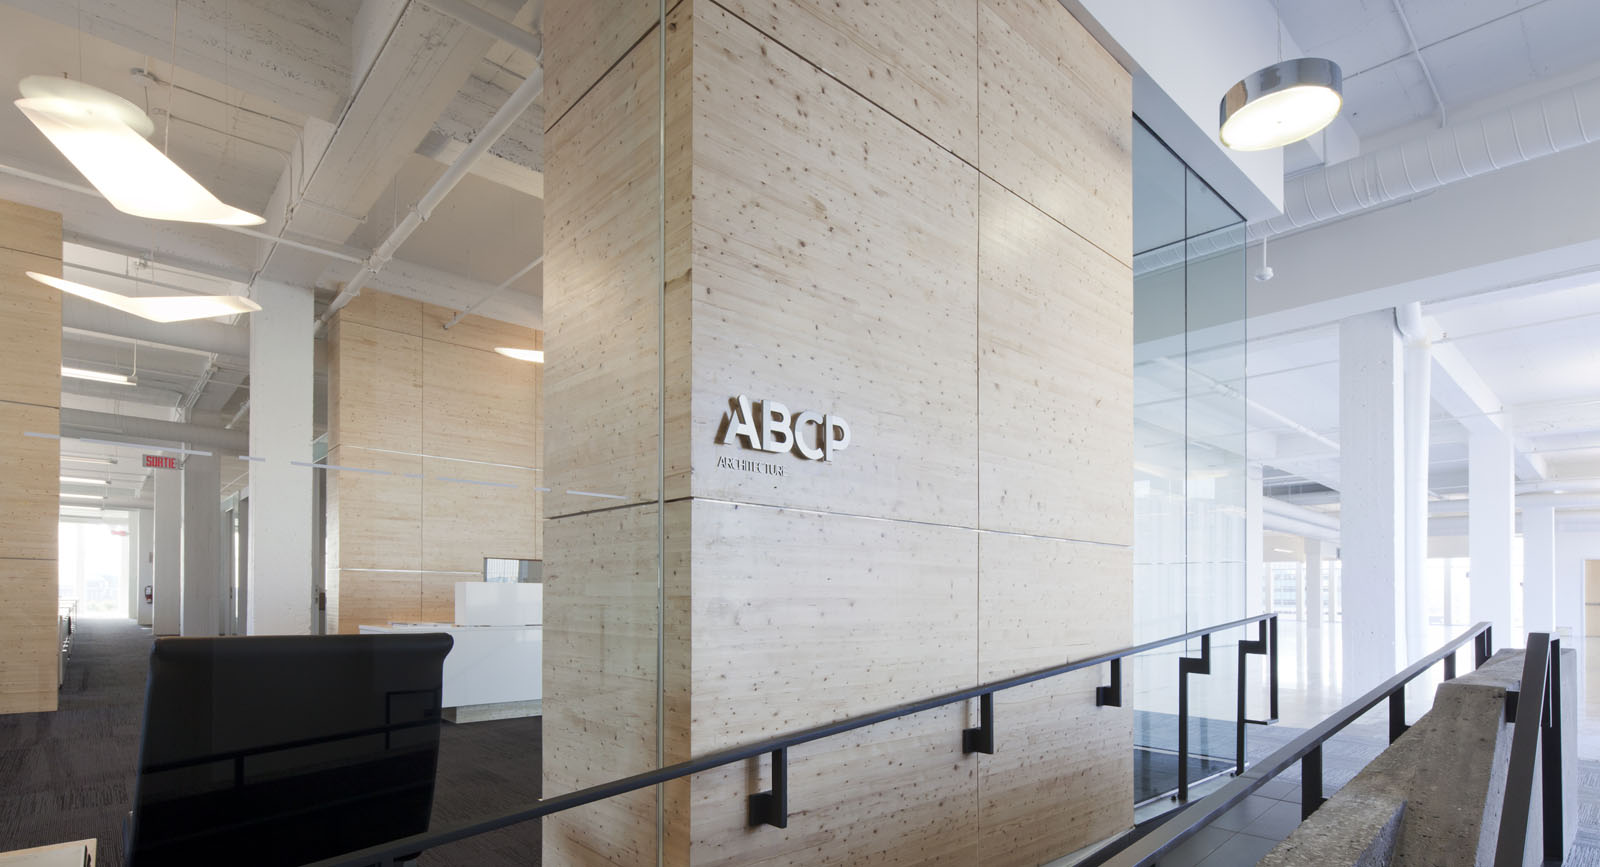 Abcp quebec offices abcp